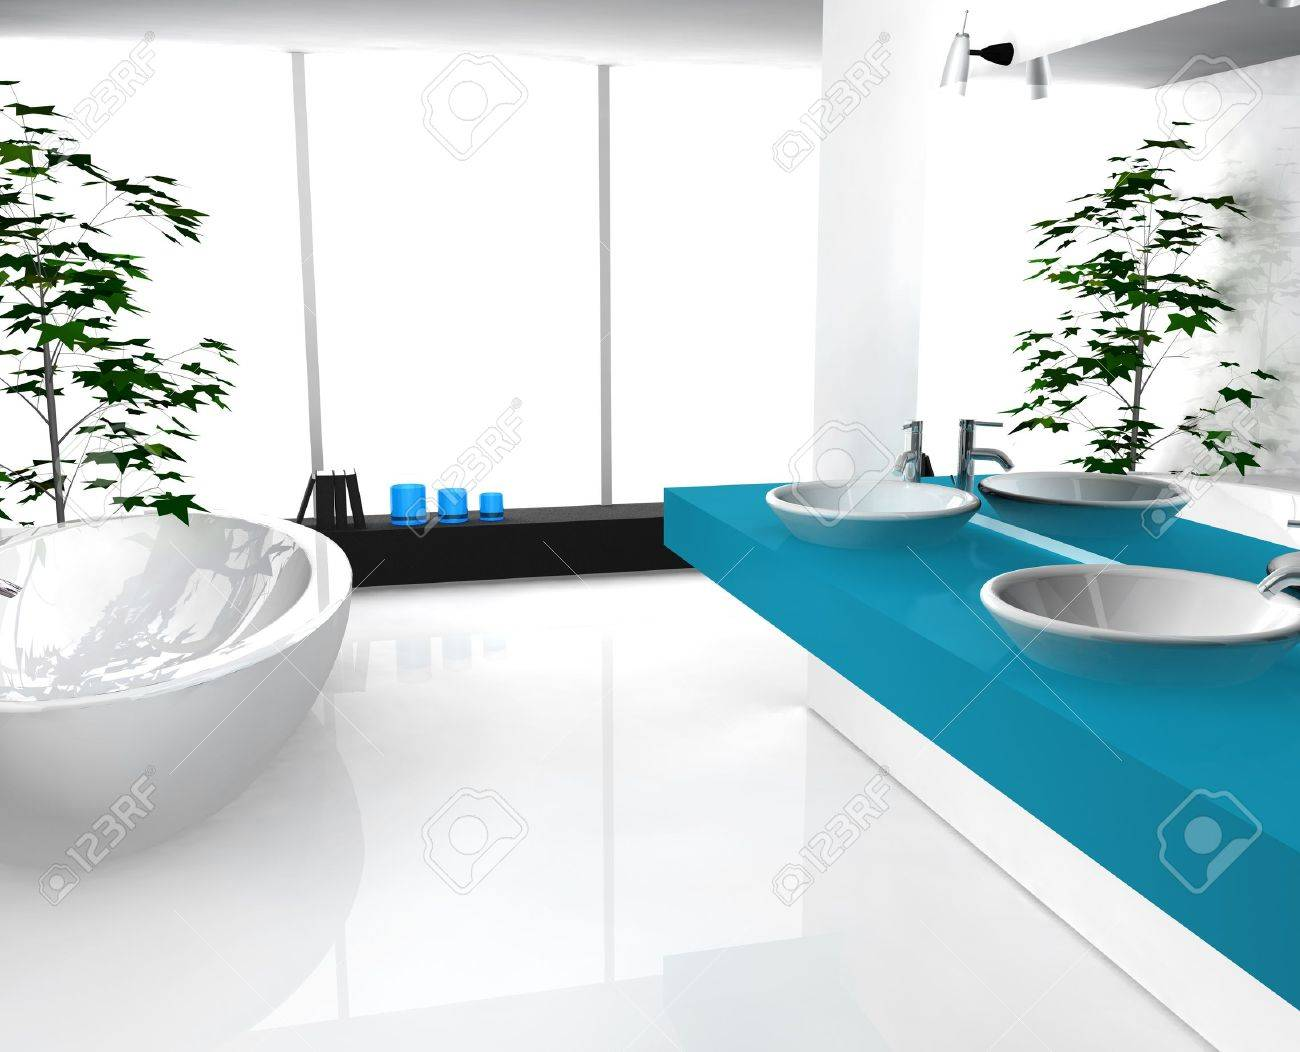 modern luxurious bathroom with contemporary design and furniture